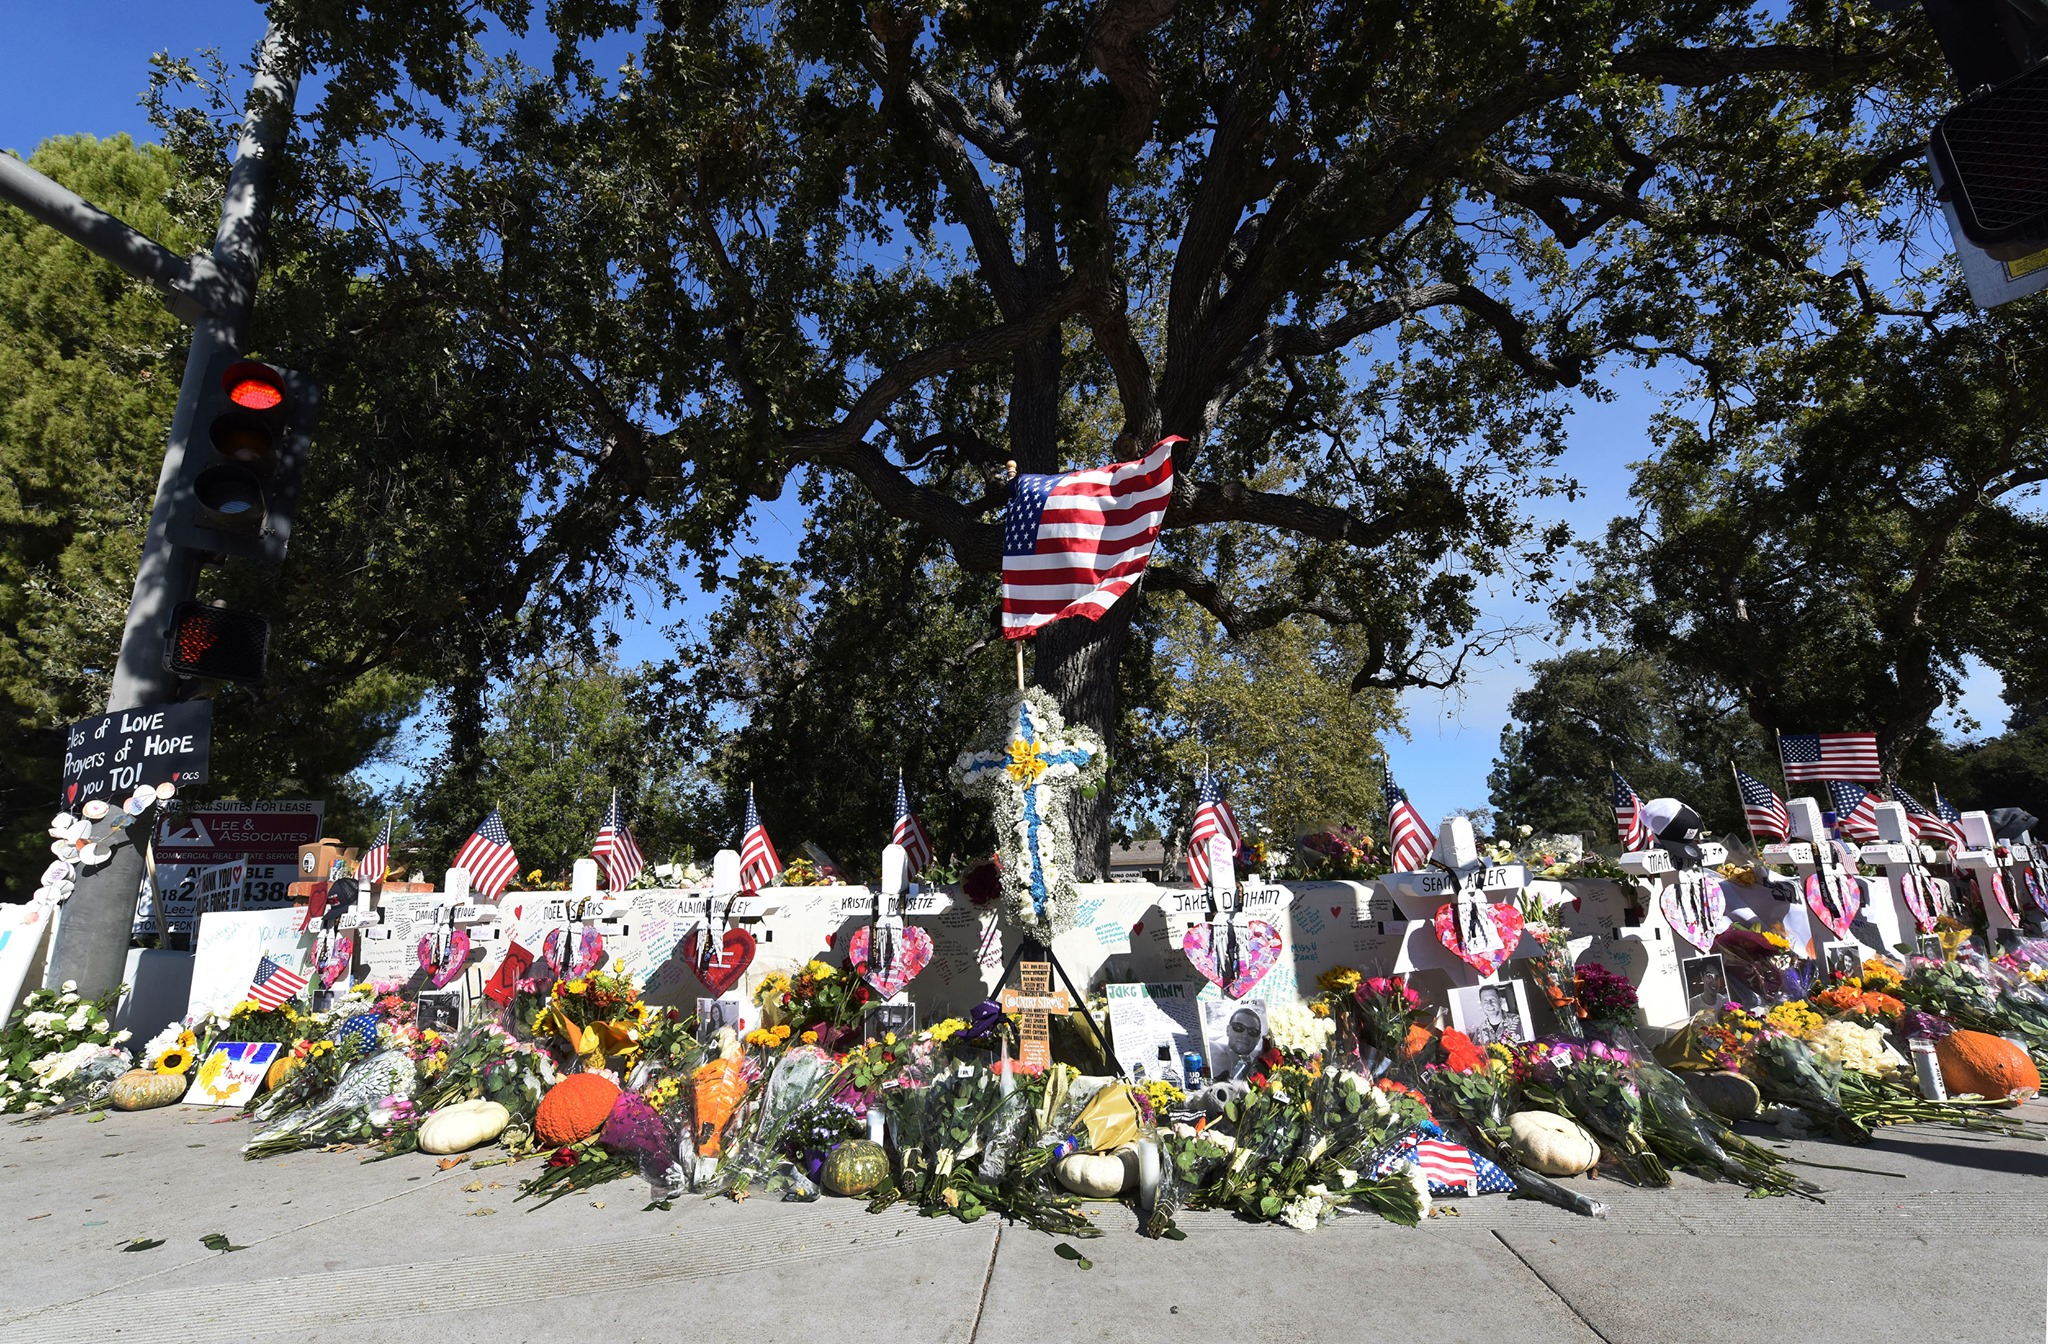 A memorial for the victims of the Borderline Bar & Grill mass shooting in Thousand Oaks appears in a photo posted by the Ventura County Sheriff's Office to Facebook on Nov. 7, 2019.